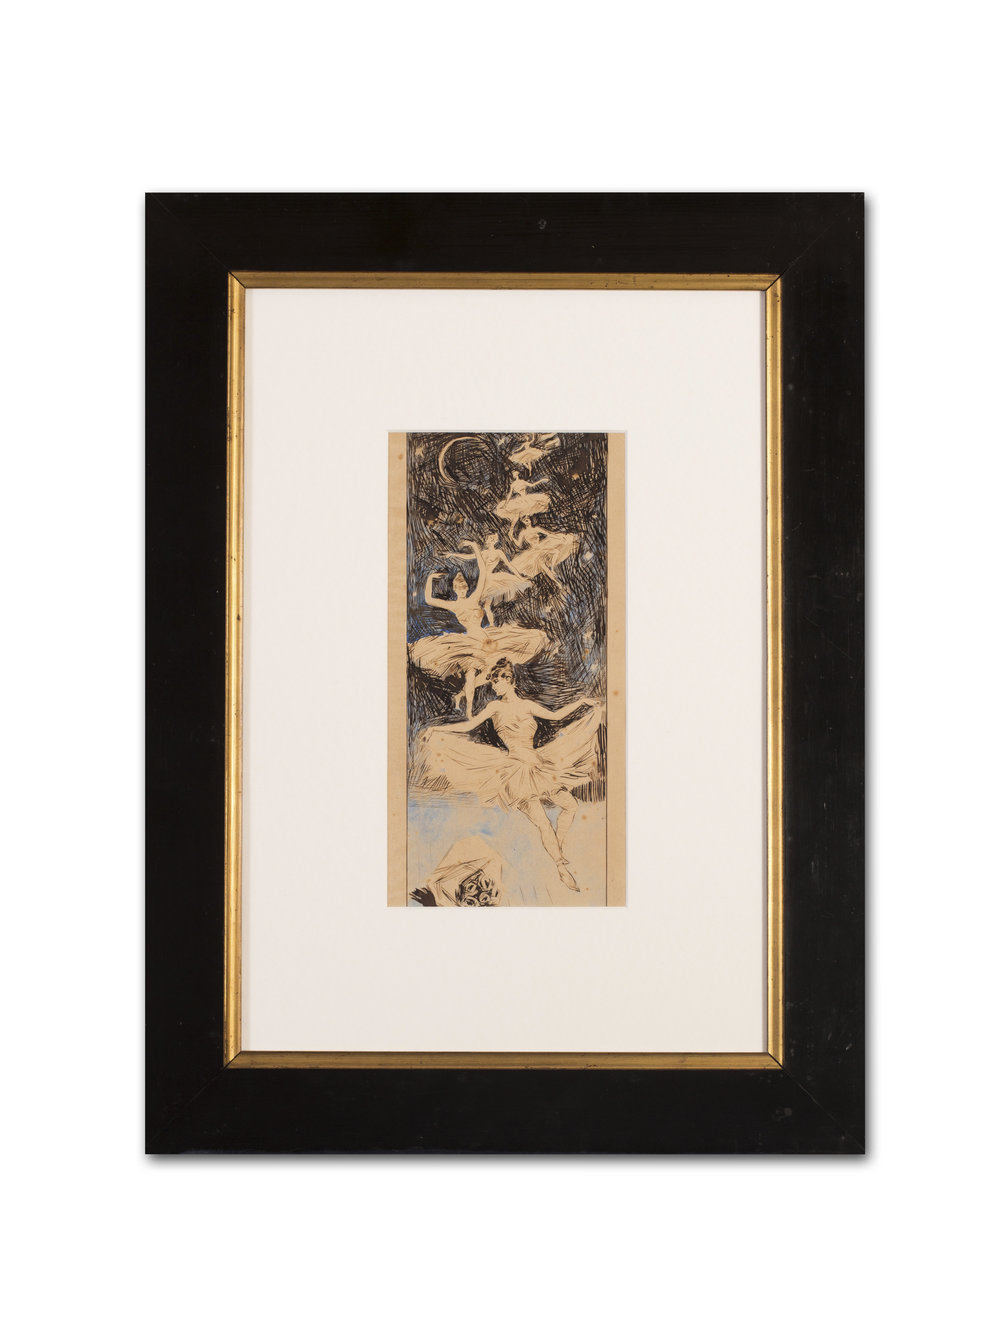 Attributed to Jules Cheret    A Ballerina dream sequence, Circa 1900s   Pen, ink and watercolour on paper  10 x 5.3/8in. (25.4 x 13.6cm)   Price: £450